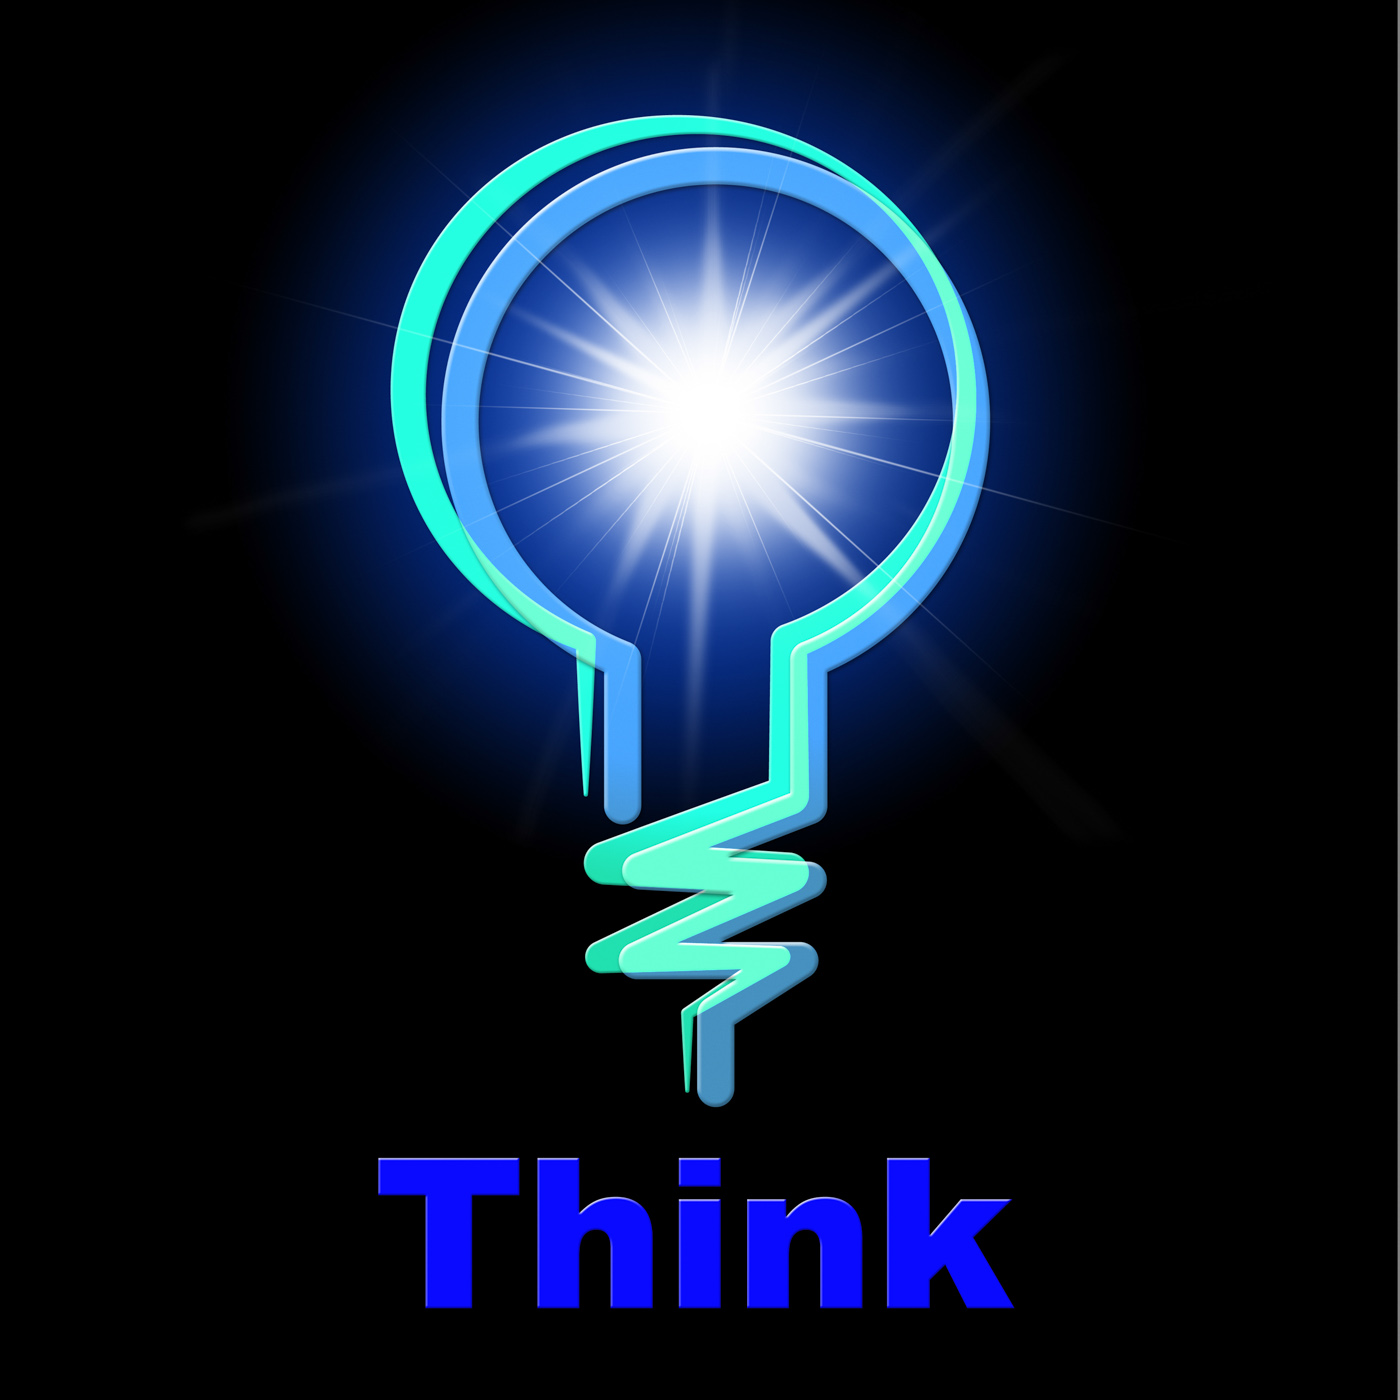 Light Bulb Means Think About It And Thinking, Idea, Reflection, Reflecting, Reflect, HQ Photo